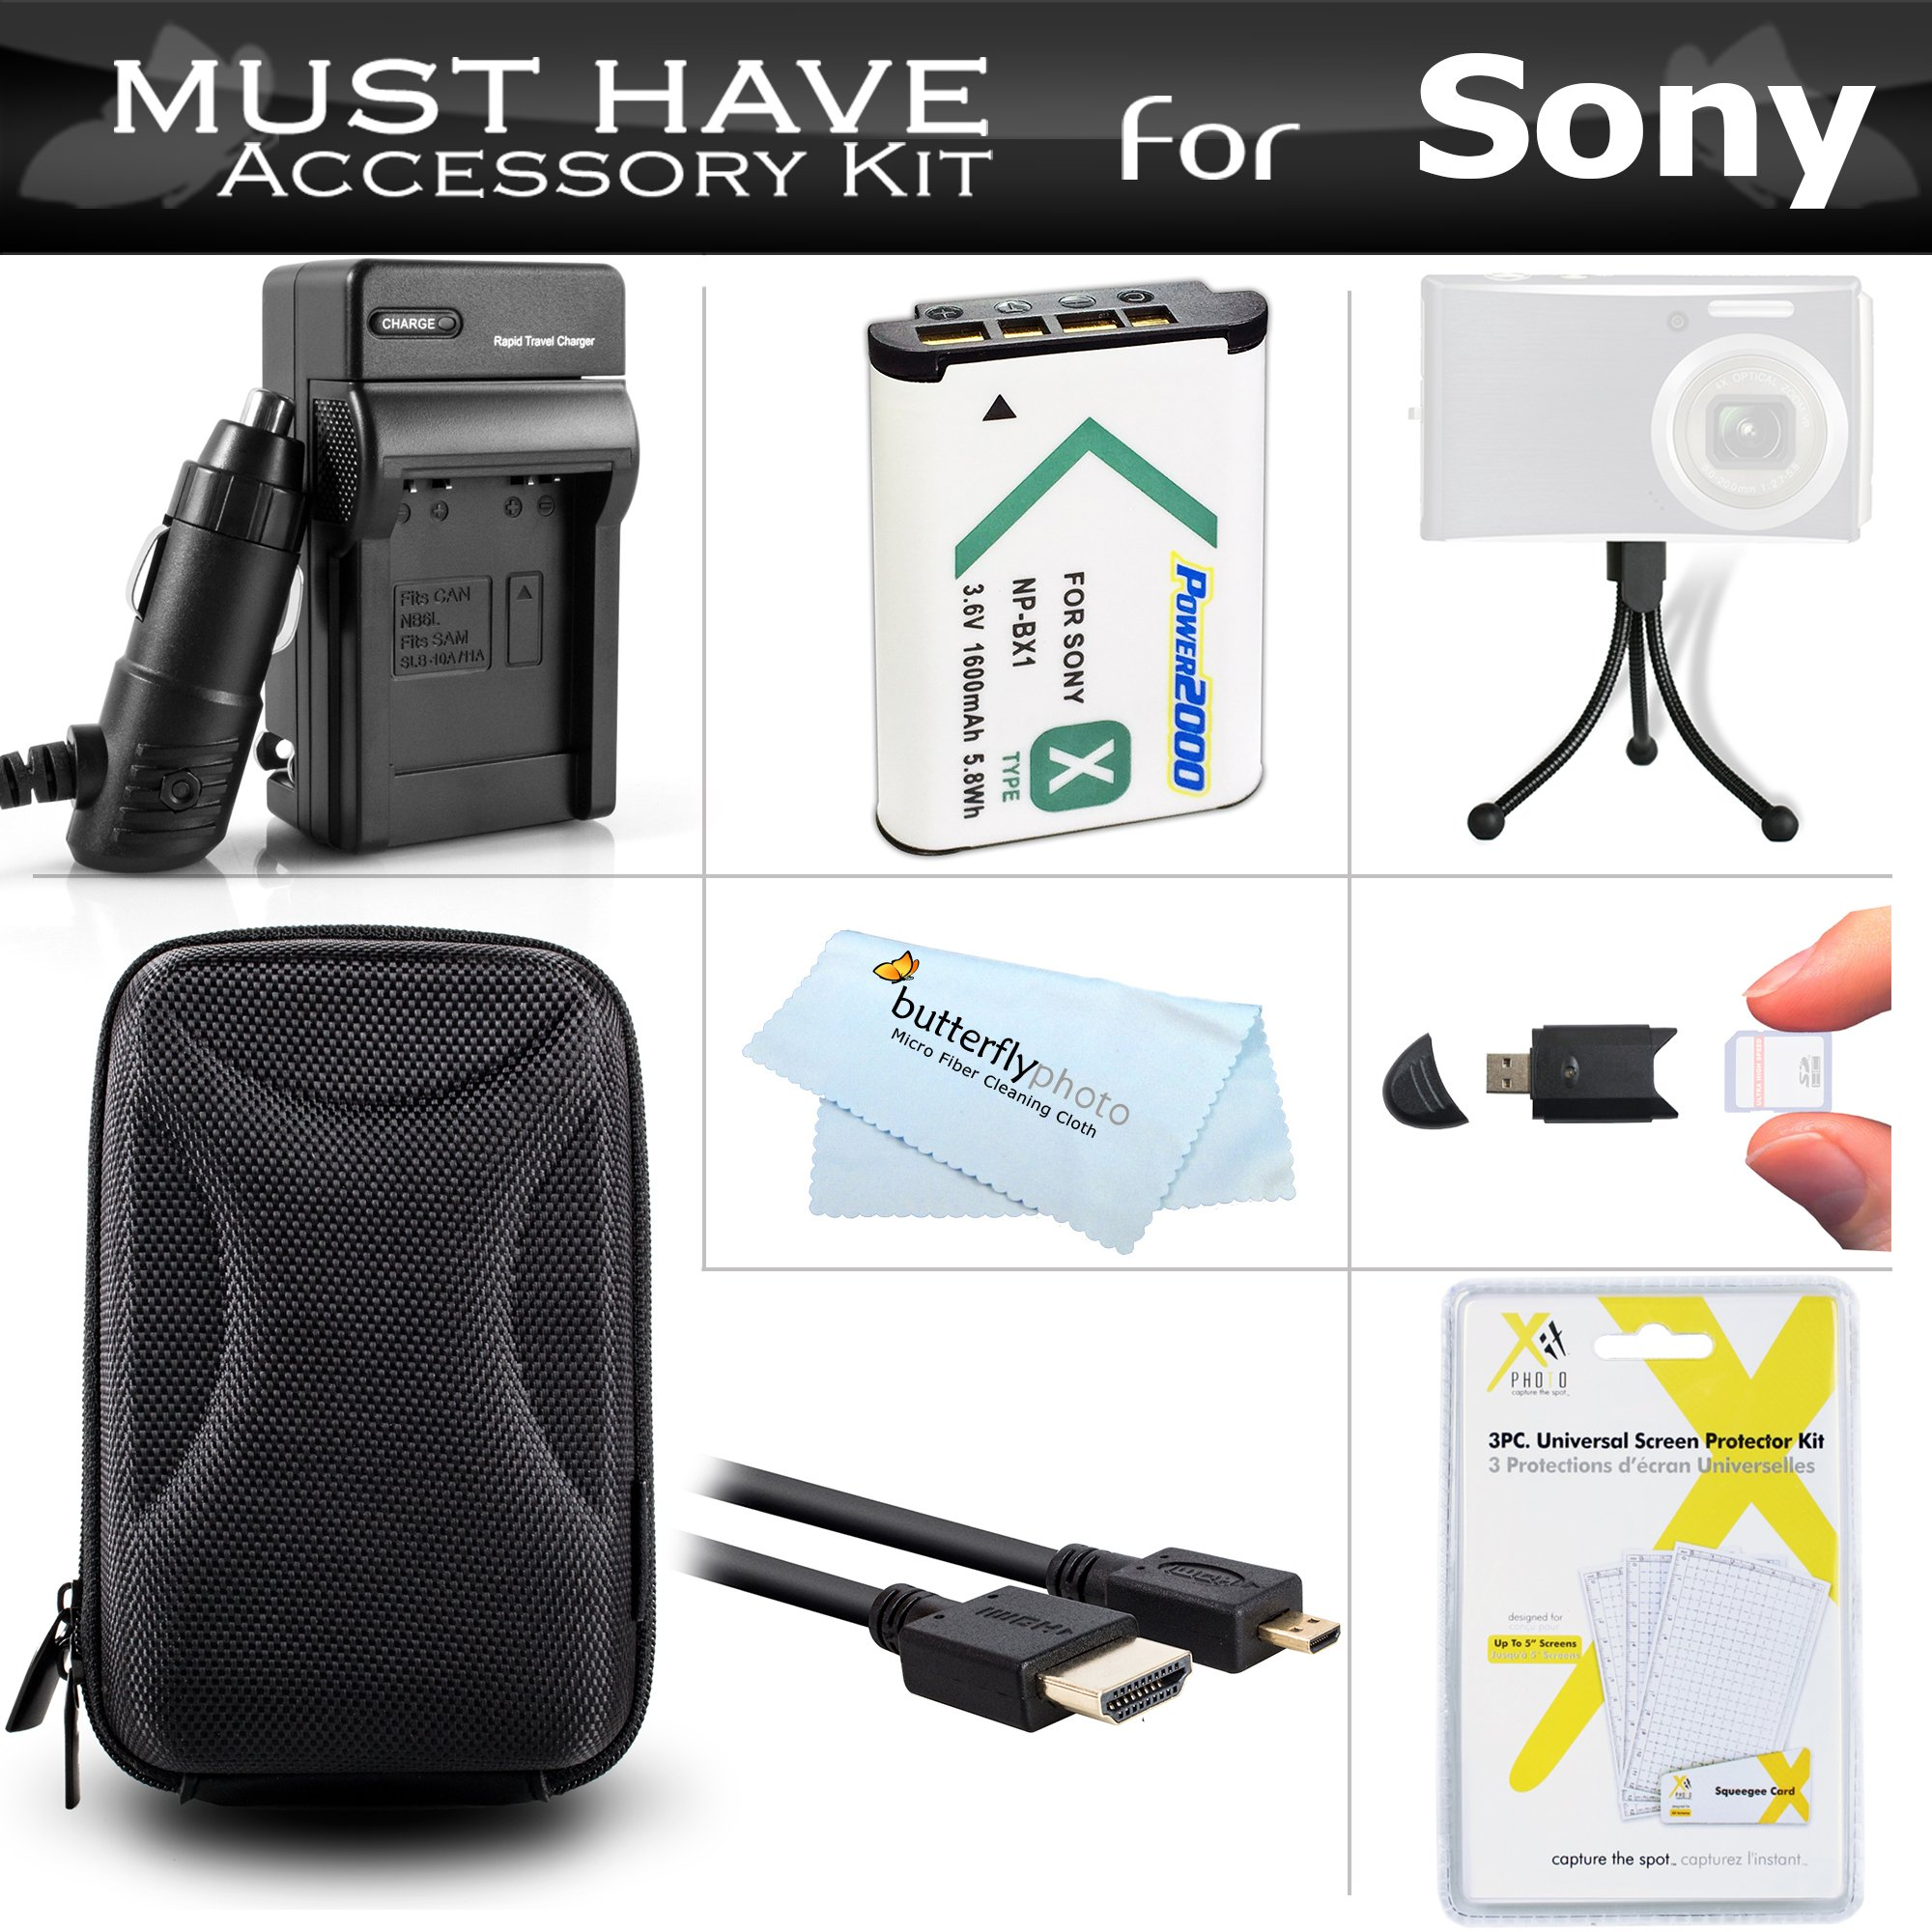 Must Have Accessory Bundle Kit For Sony DSC-RX100 V, DSC-RX100M III, DSC-RX100 IV, DSC-WX350, DSC-HX50V/B, DSCHX80/B, DSCHX90V/B, DSCWX500/B Digital Camera Includes Replacement NP-BX1 Battery + Charger + Case + More